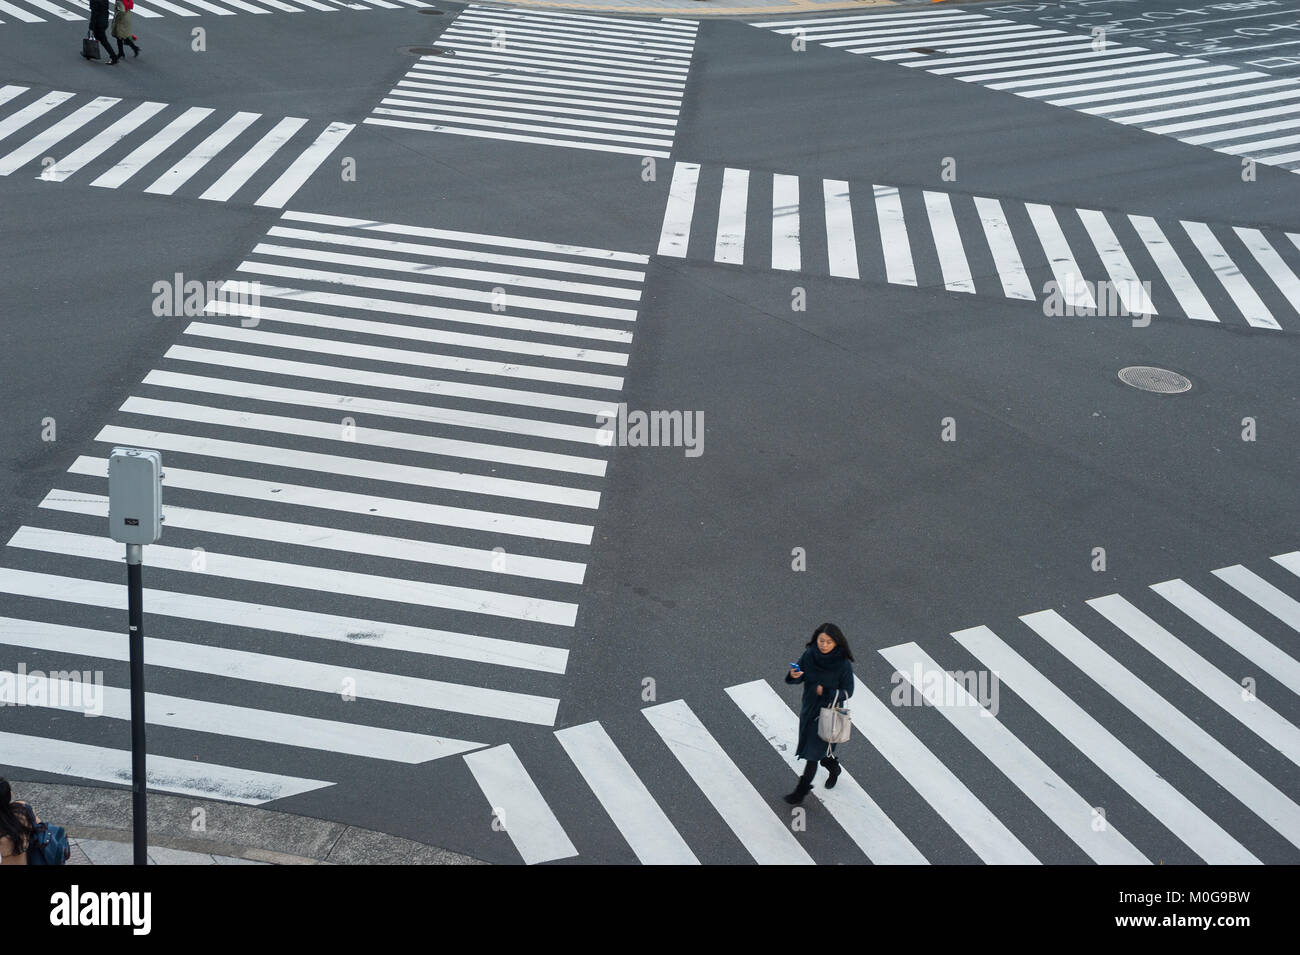 01.01.2018, Tokyo, Japan, Asia - A pedestrian crossing in Tokyo's Ginza district. - Stock Image